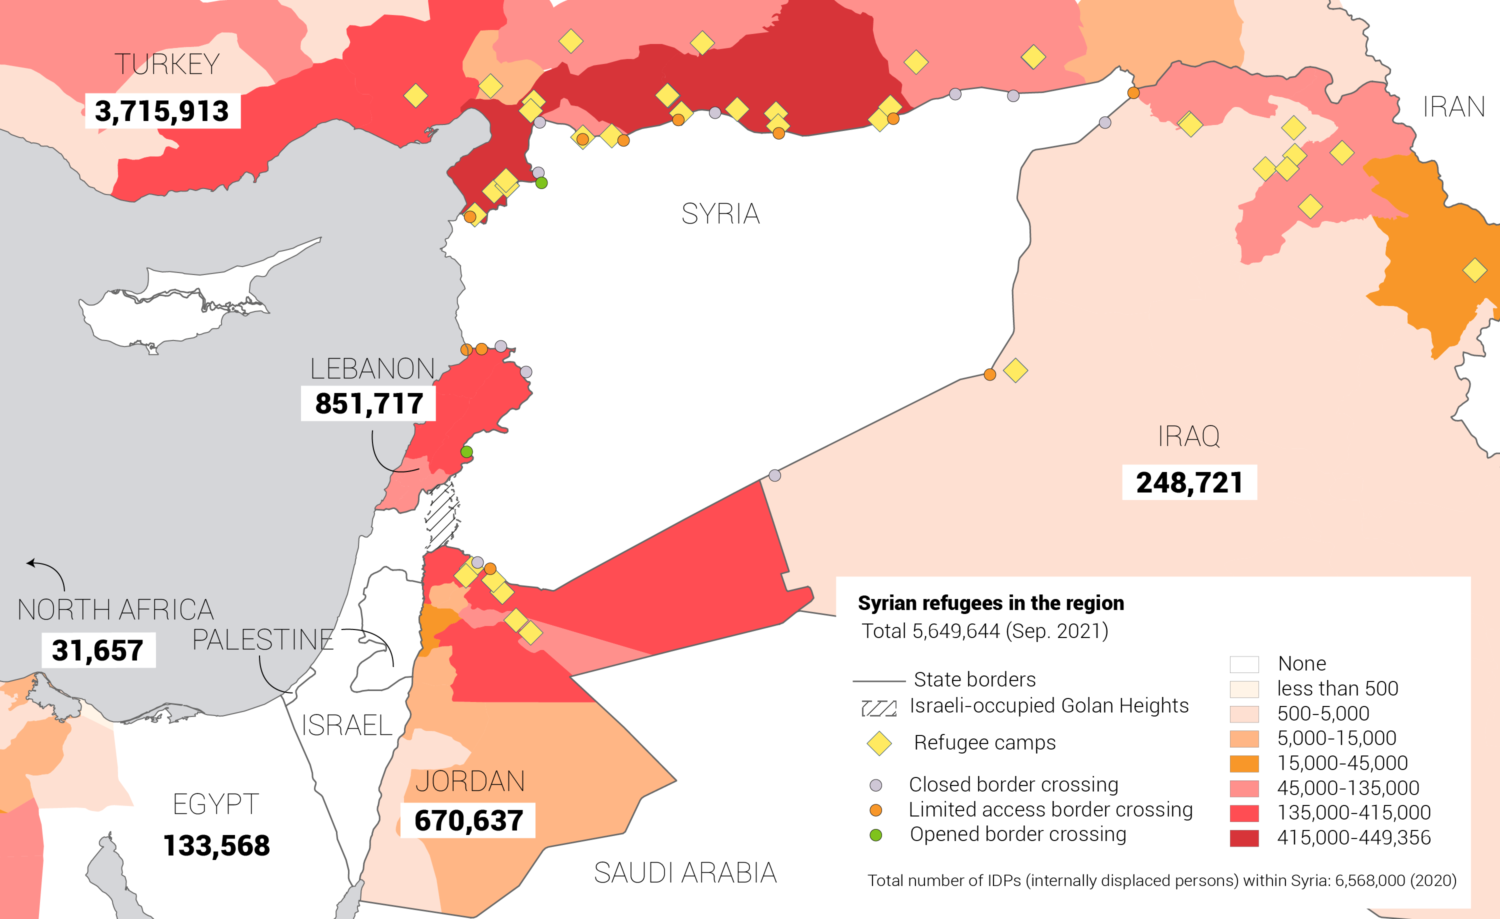 Syrian refugees distribution in the region map 2021